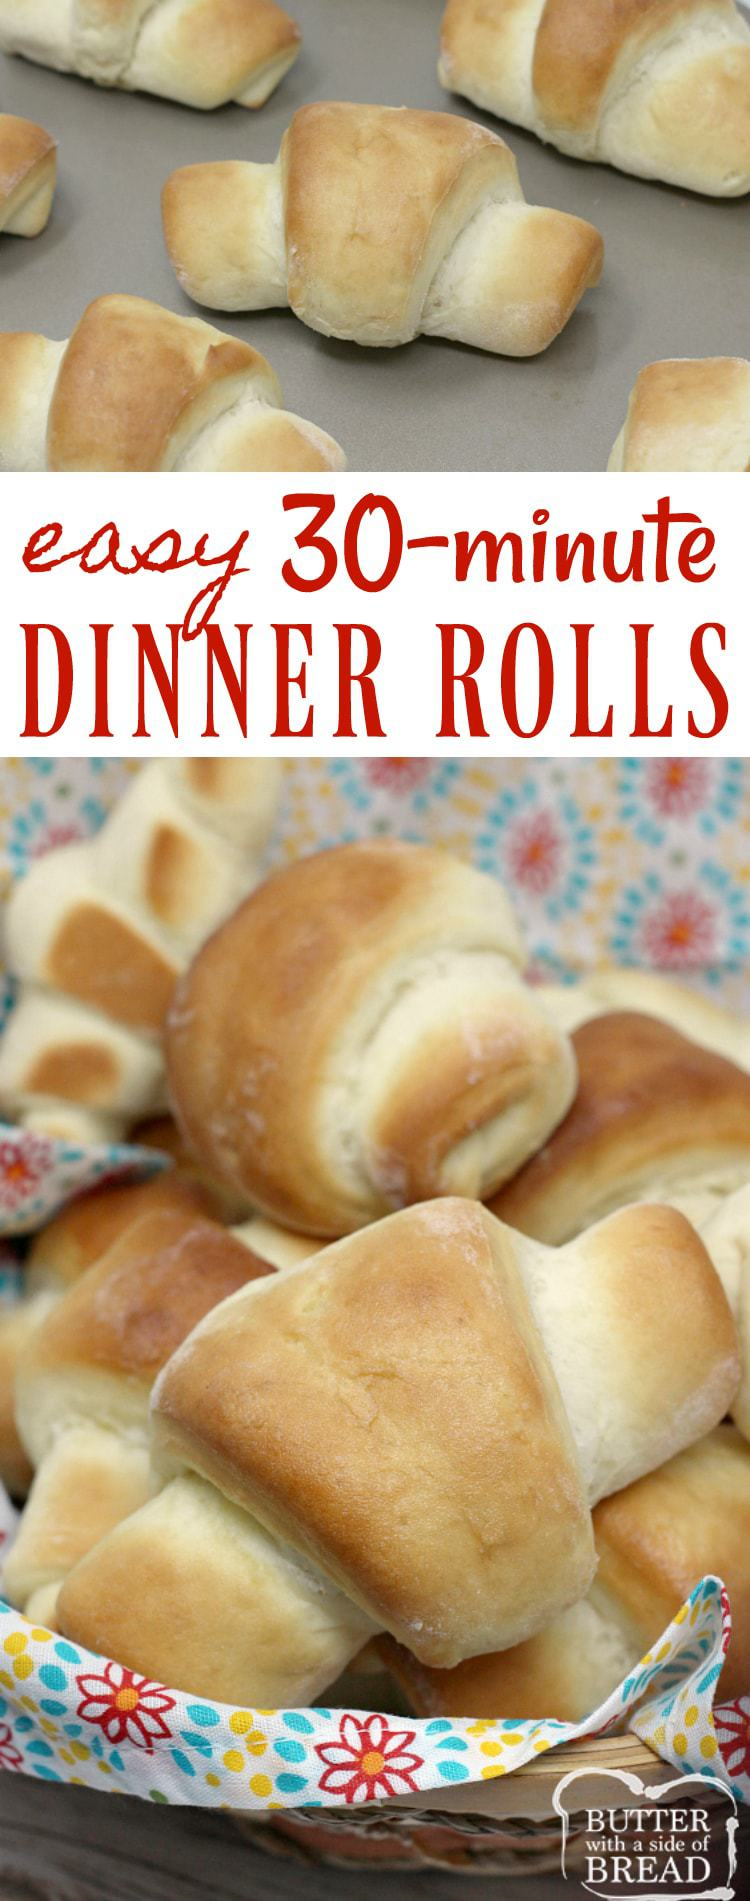 Easy 30-Minute Dinner Rolls are made with a few basic ingredients, you don't need a mixer, and they turn out perfectly soft and delicious every time! Delicious #homemade #dinner #rolls #bread #recipe from Butter With A Side of Bread #yeast #easy